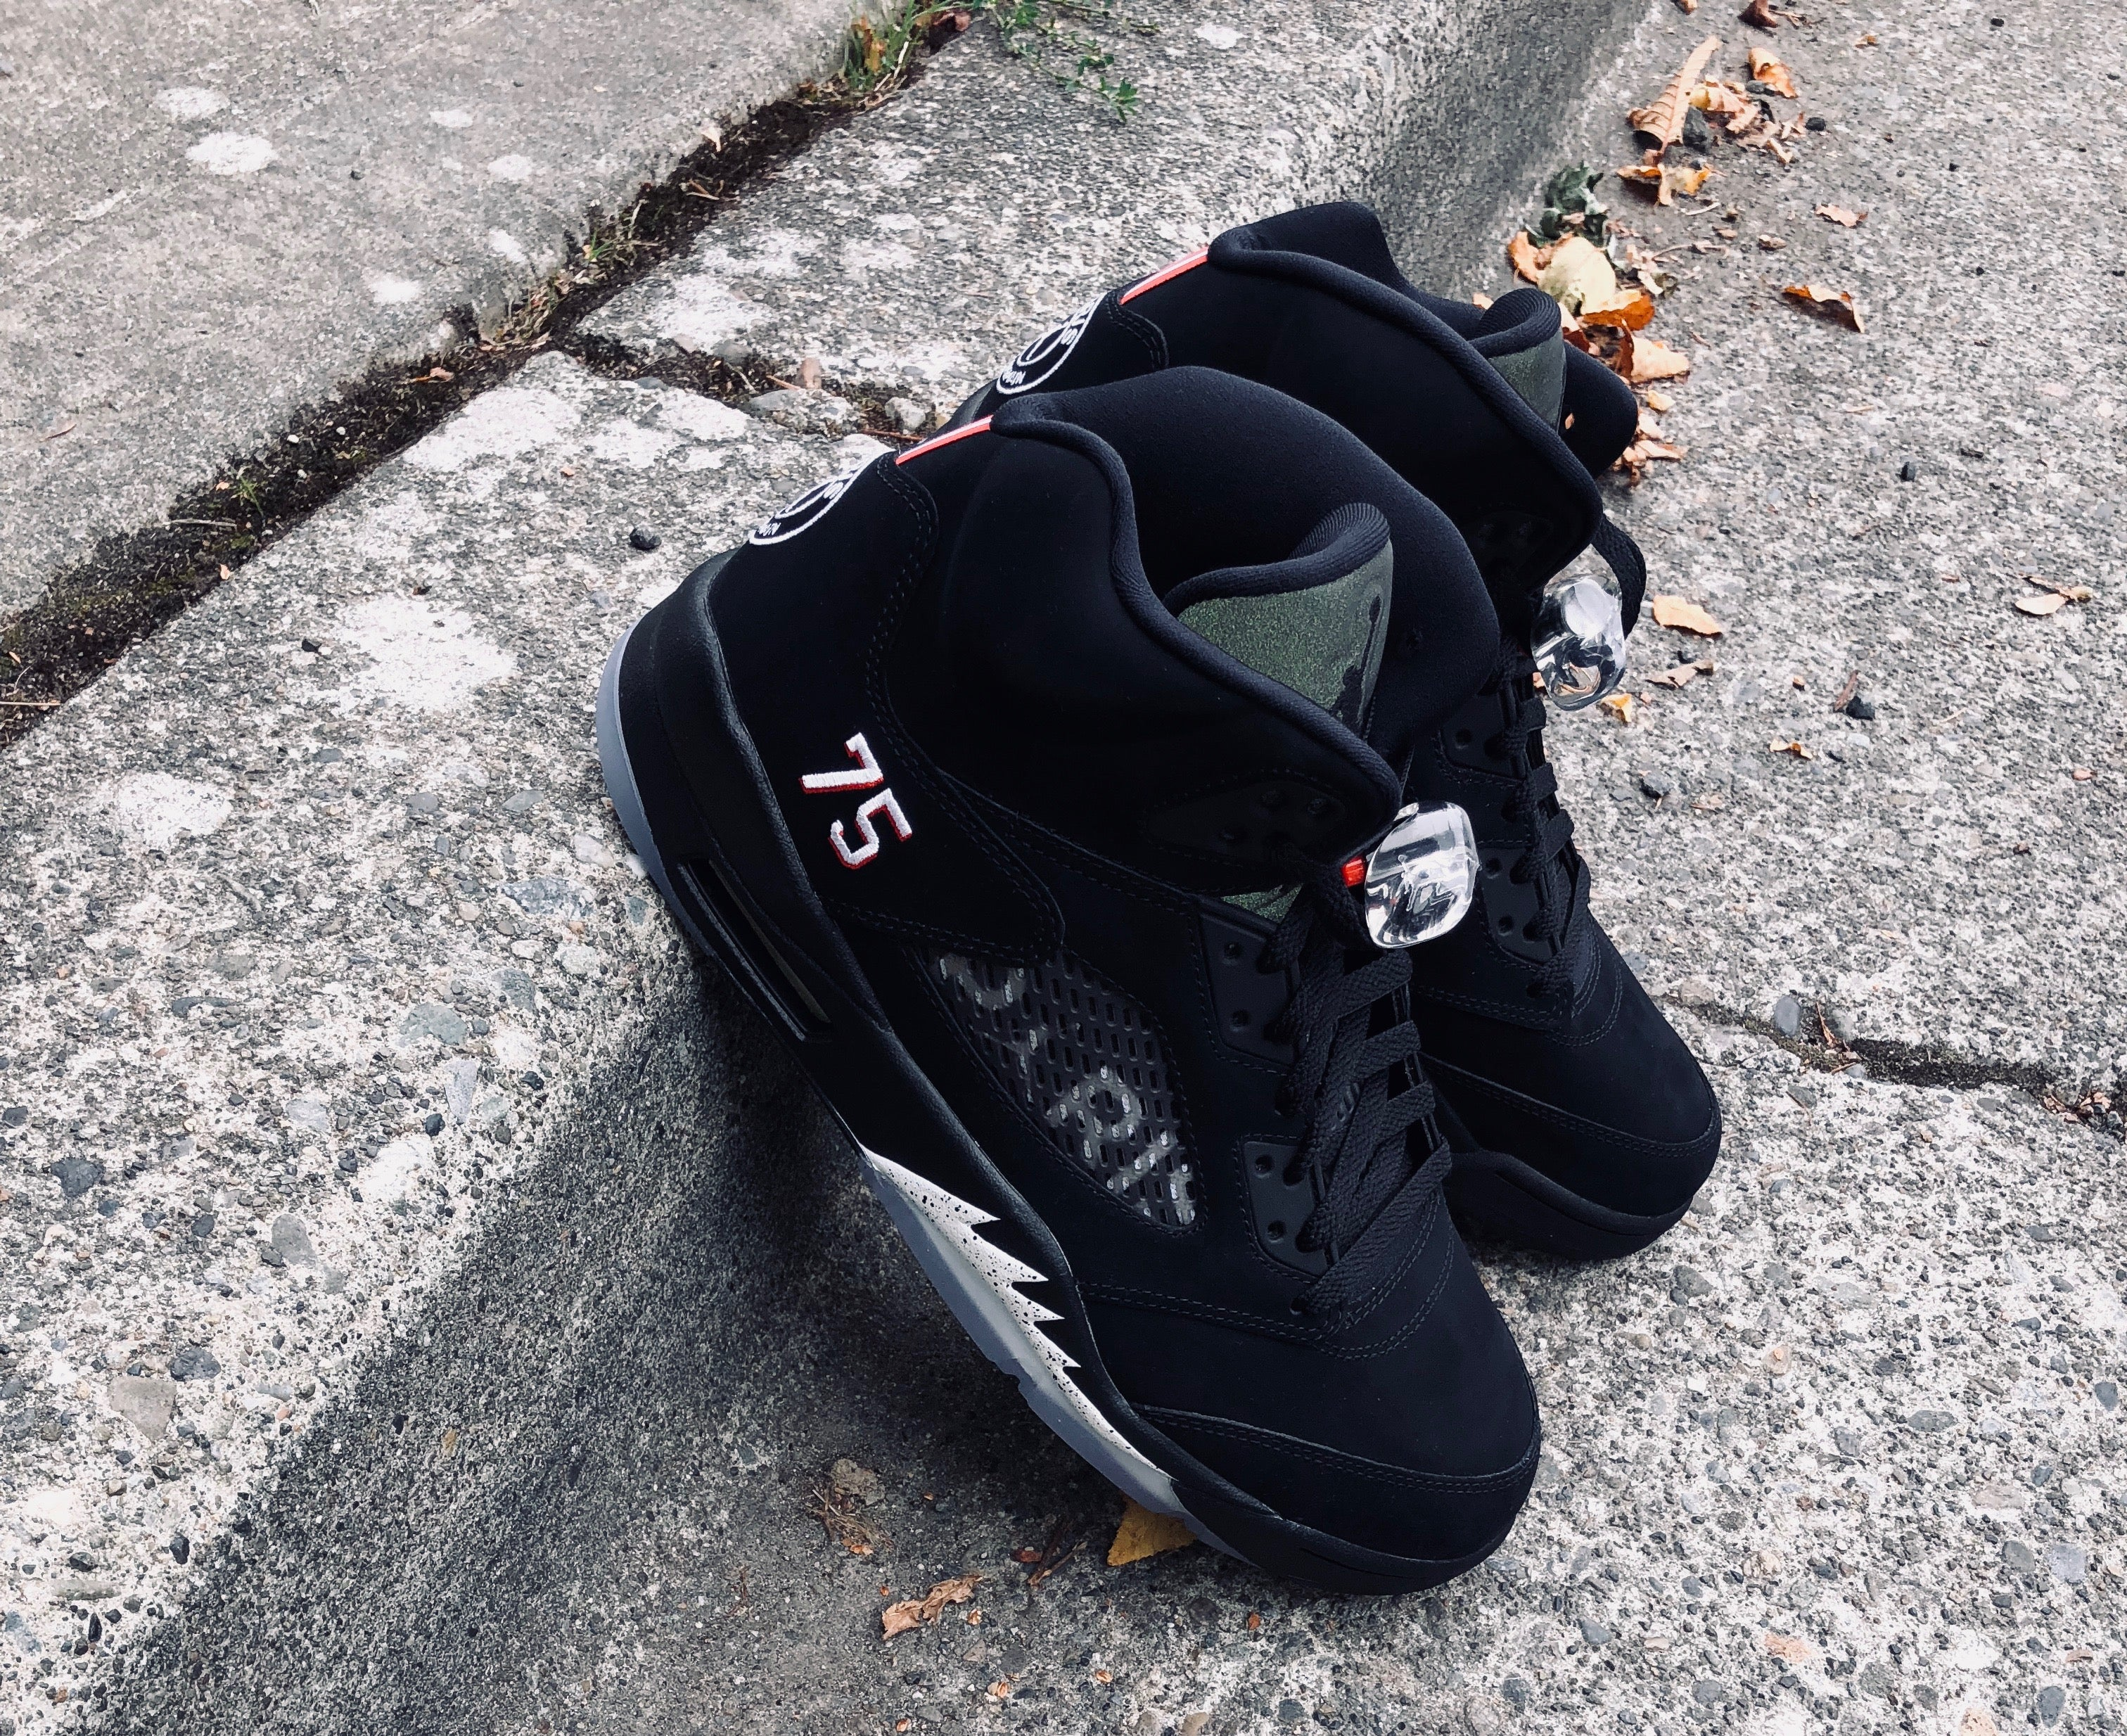 34f24e6f Air Jordan 5 Retro Paris Saint Grermain (Dead stock) – Sneaker Warz